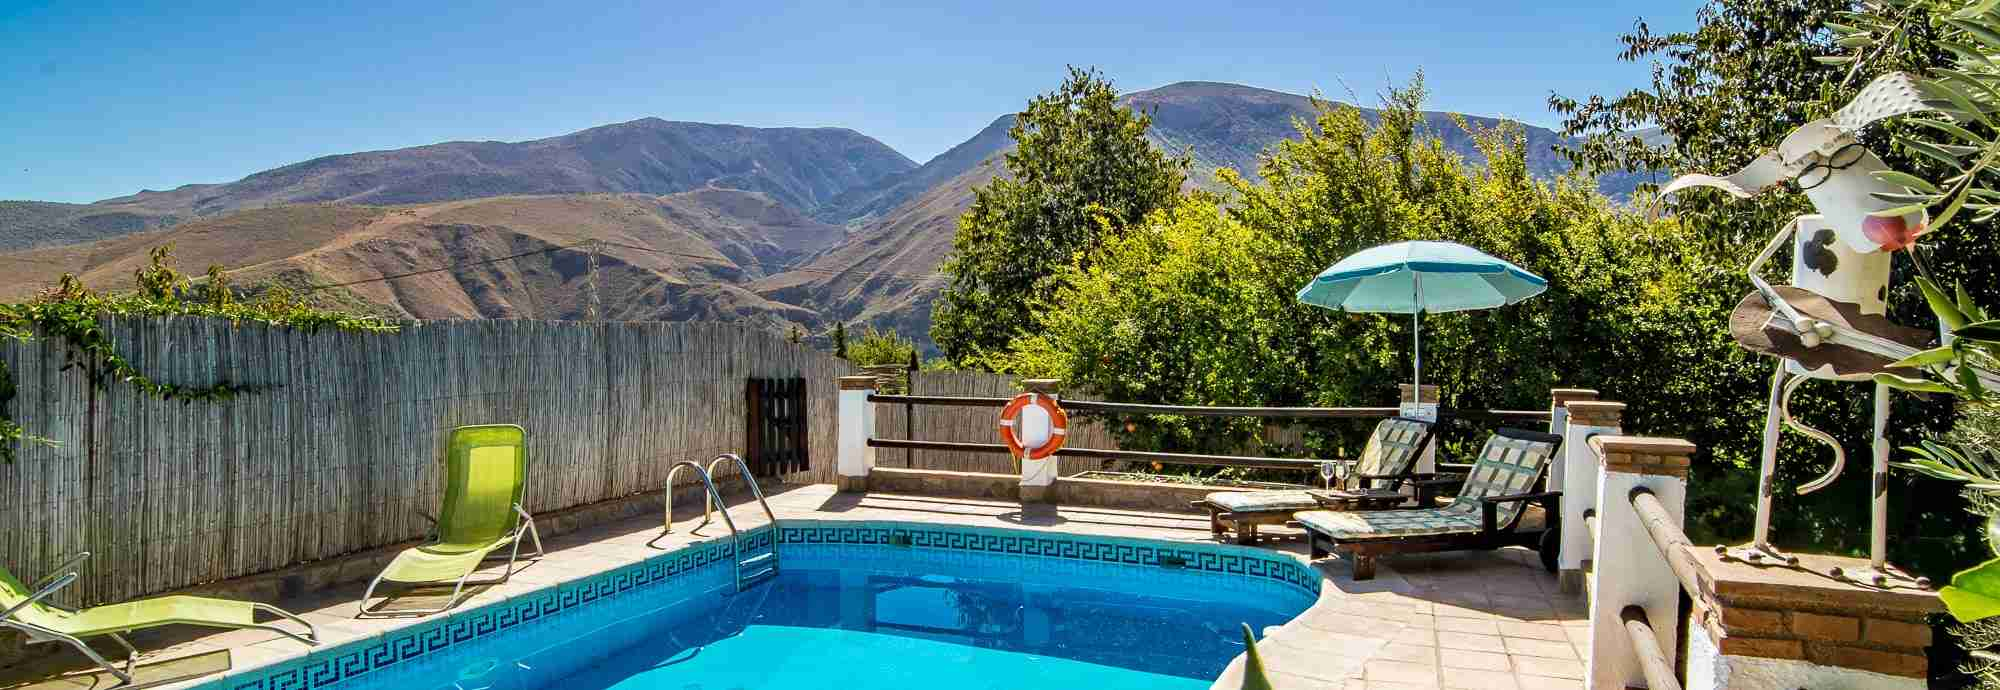 Private villa for 2 with pool, Alpujarras, Spain